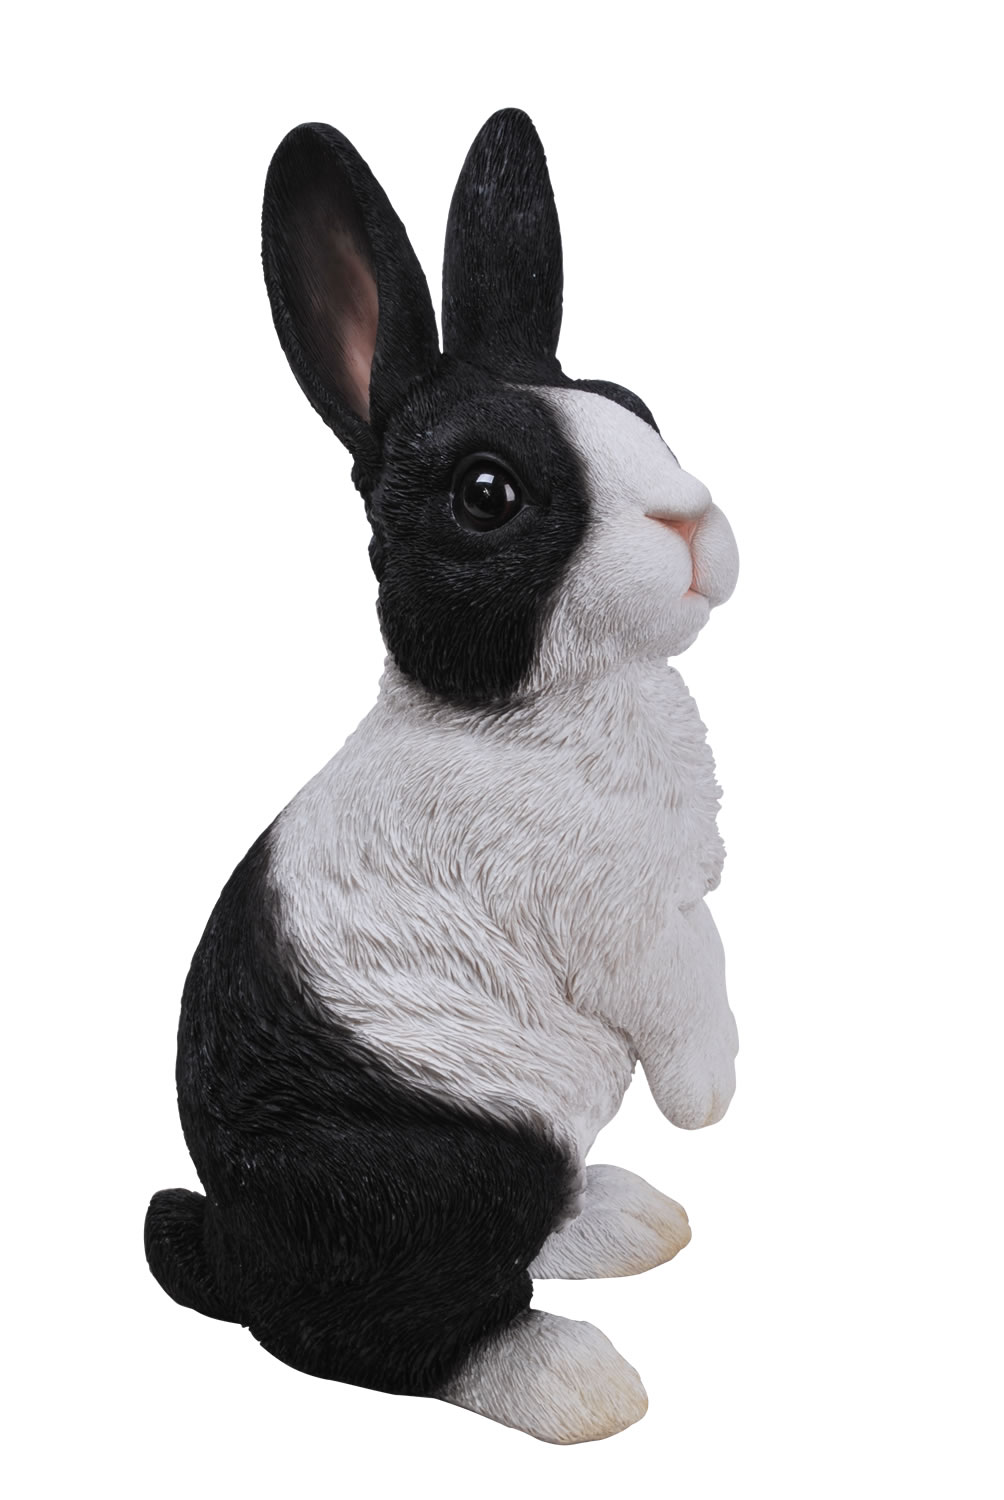 Lookout Dutch Rabbit Resin Garden Ornament 163 19 99